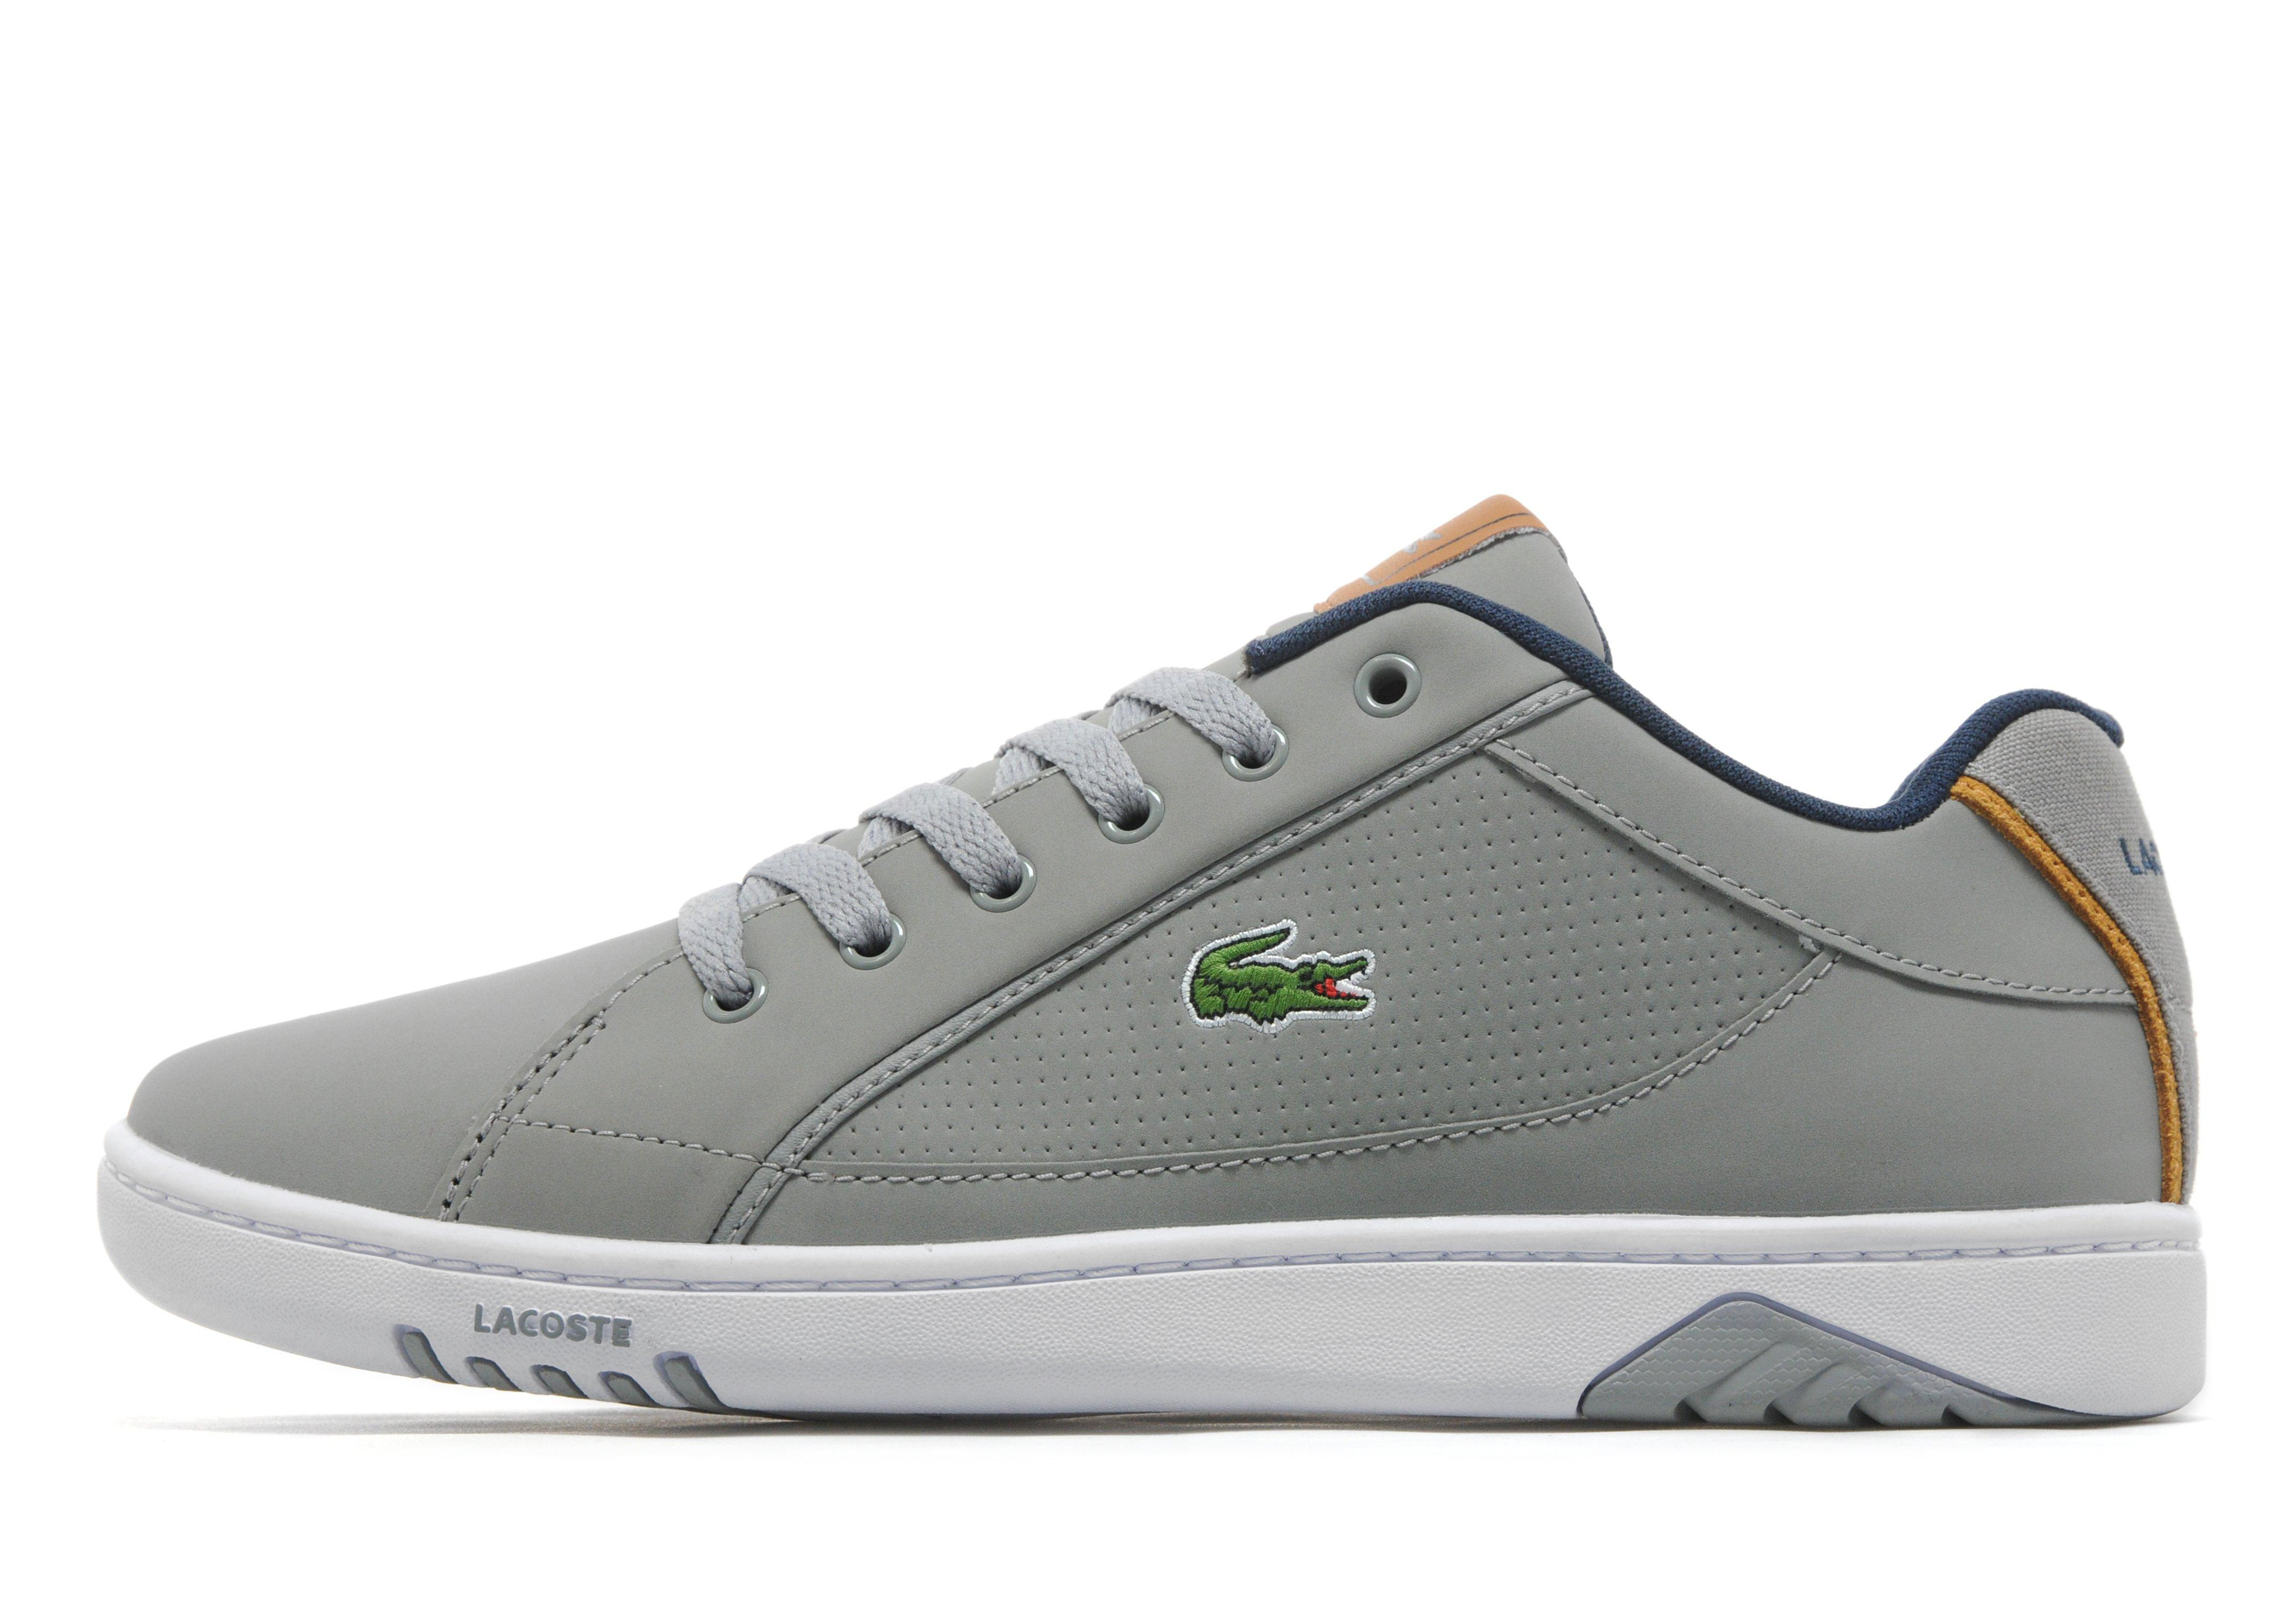 Lacoste Shoes For Women 2016